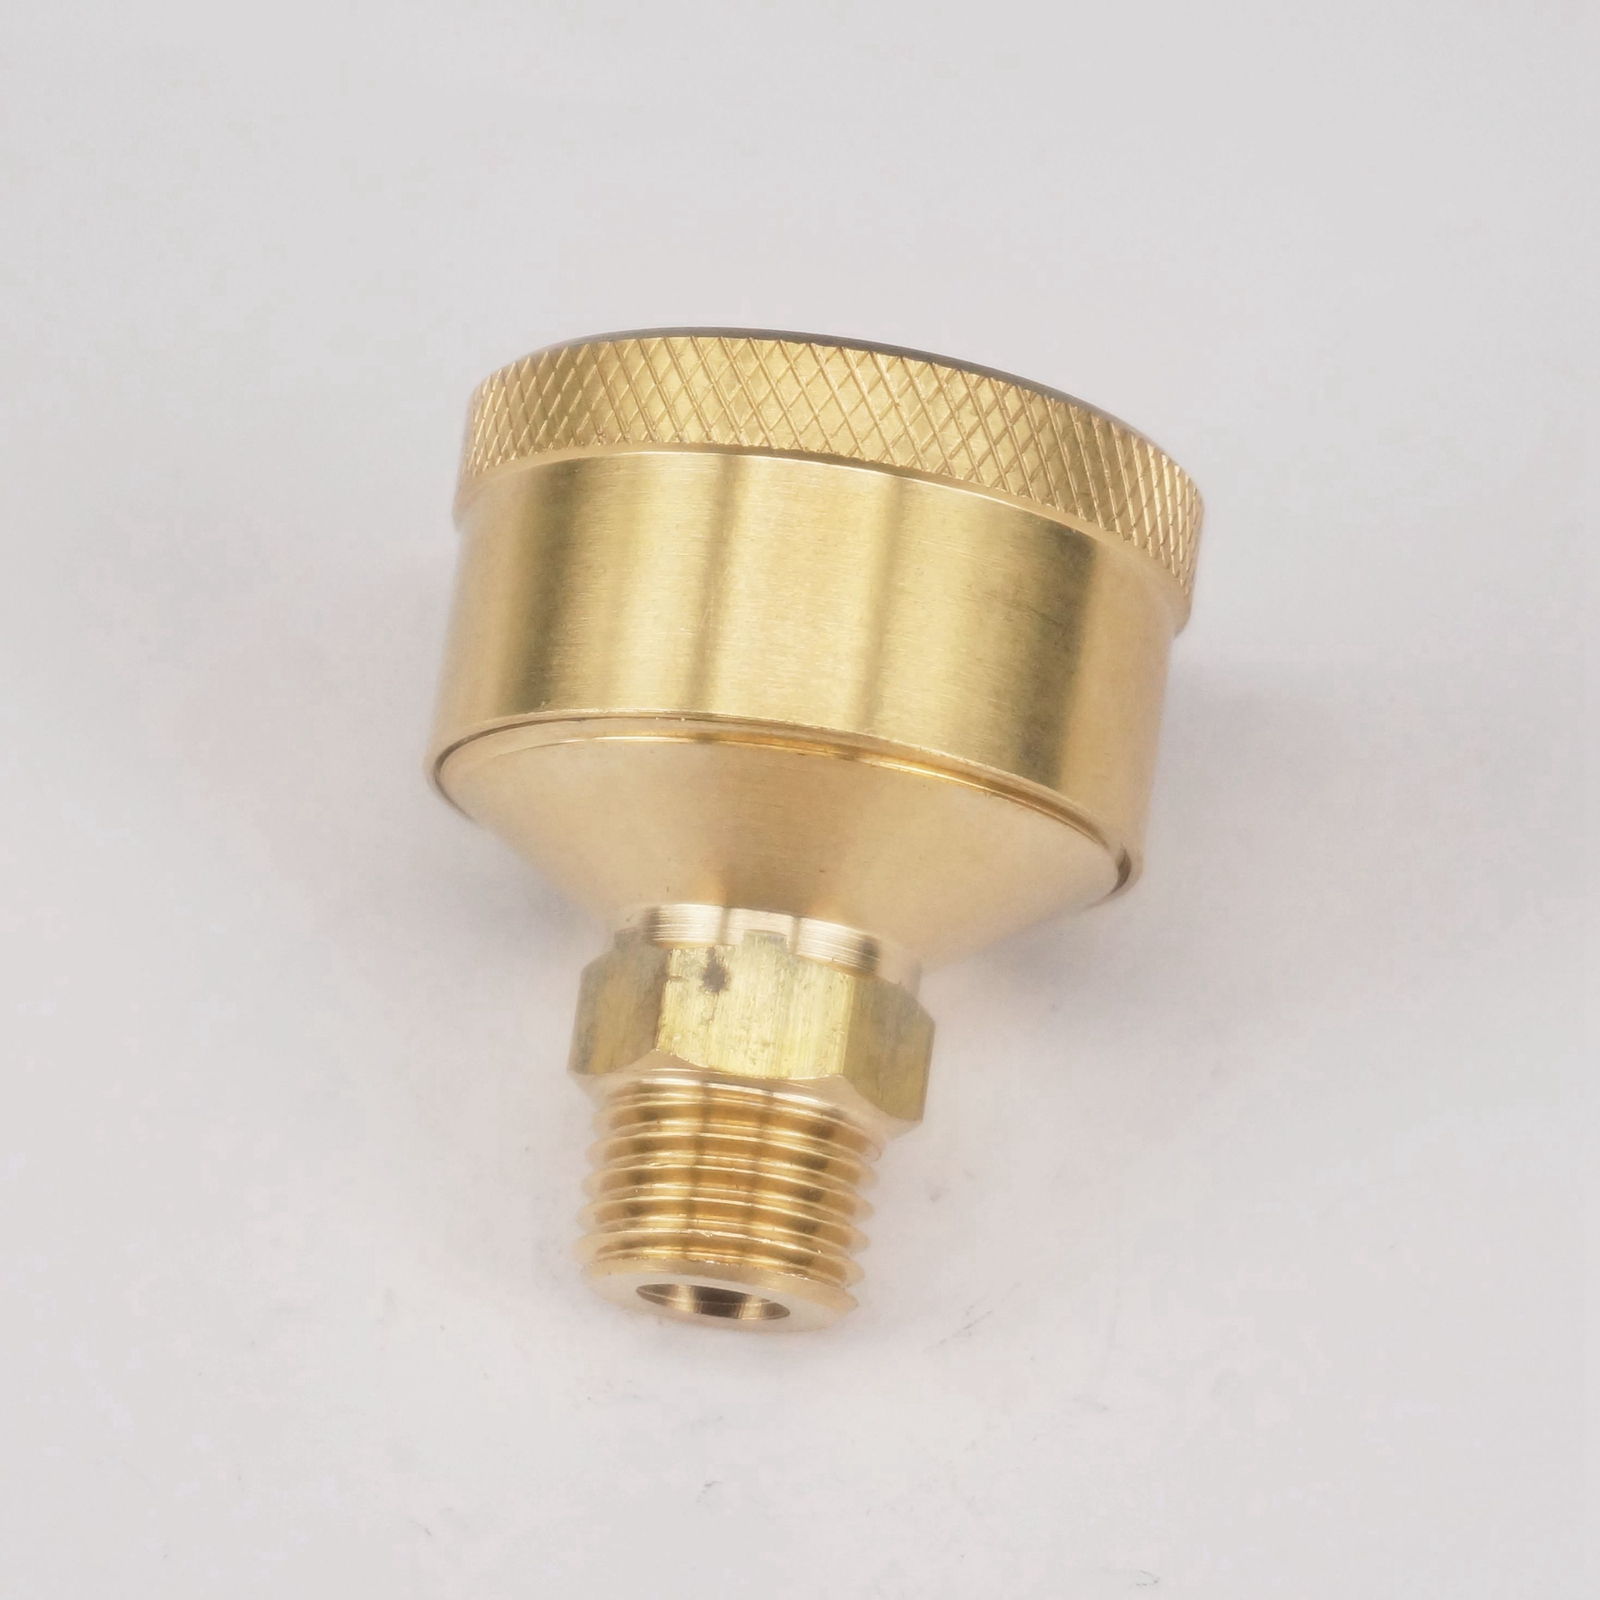 M10 x 1mm Metric 3ml Brass Grease Oil Cup Oiler Spring Cap Hit Miss Engine